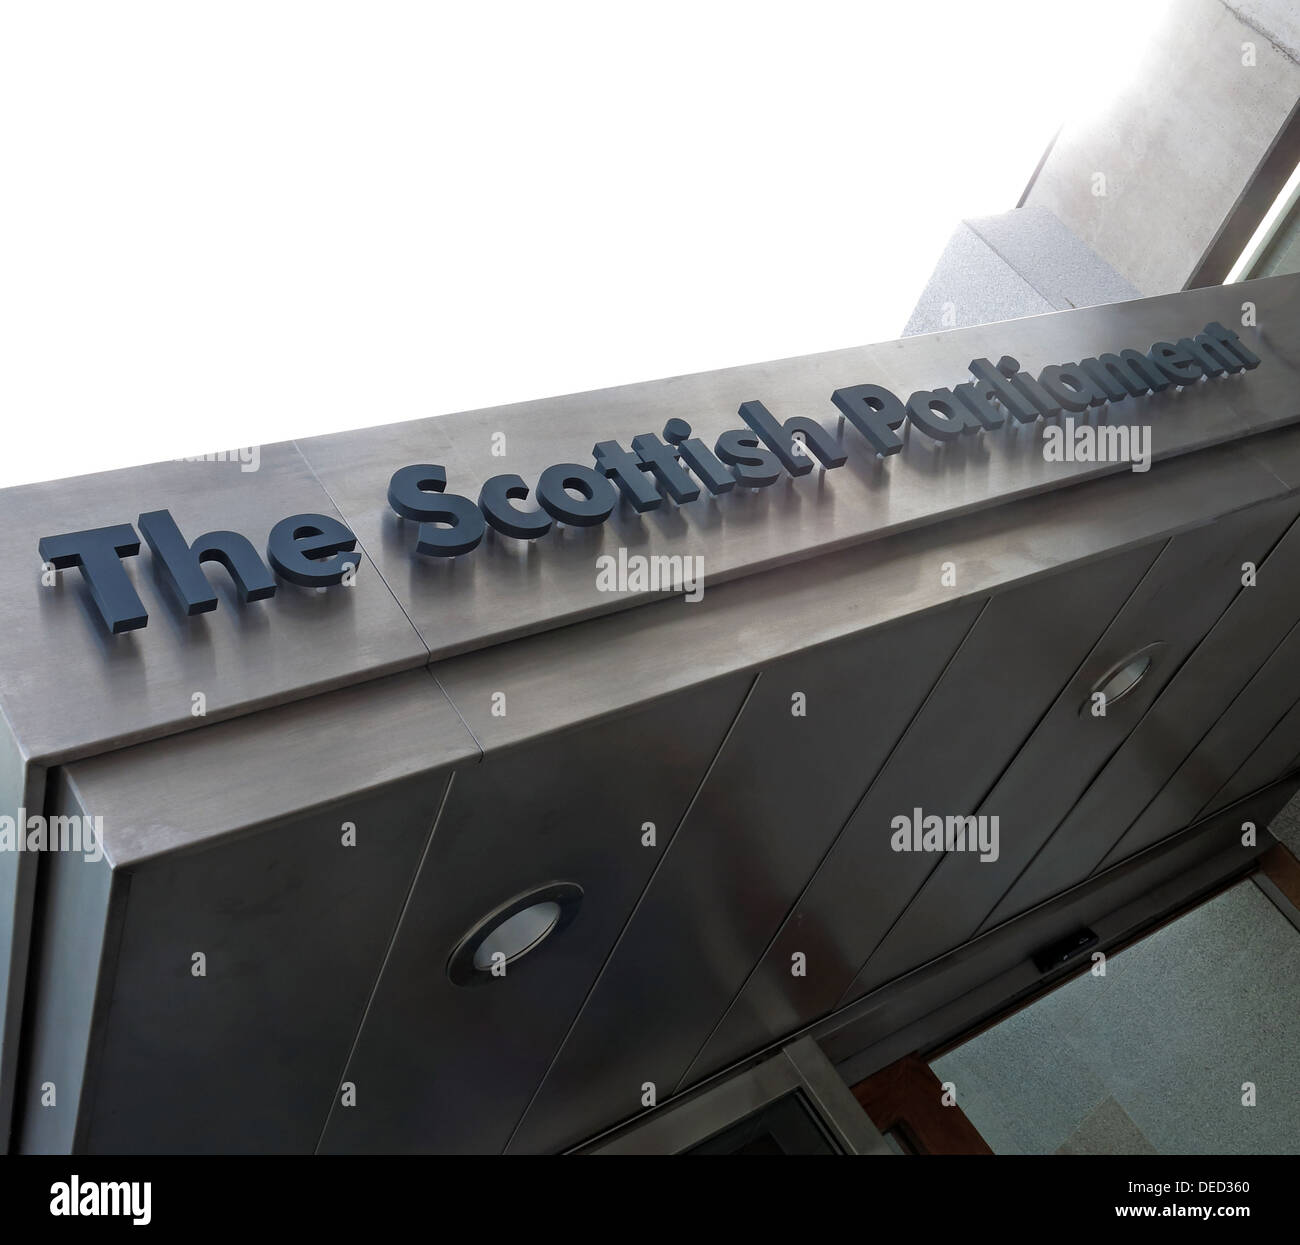 The Scottish Parliament entrance / Government in Edinburgh which would be home of an independent Scotland - Stock Image